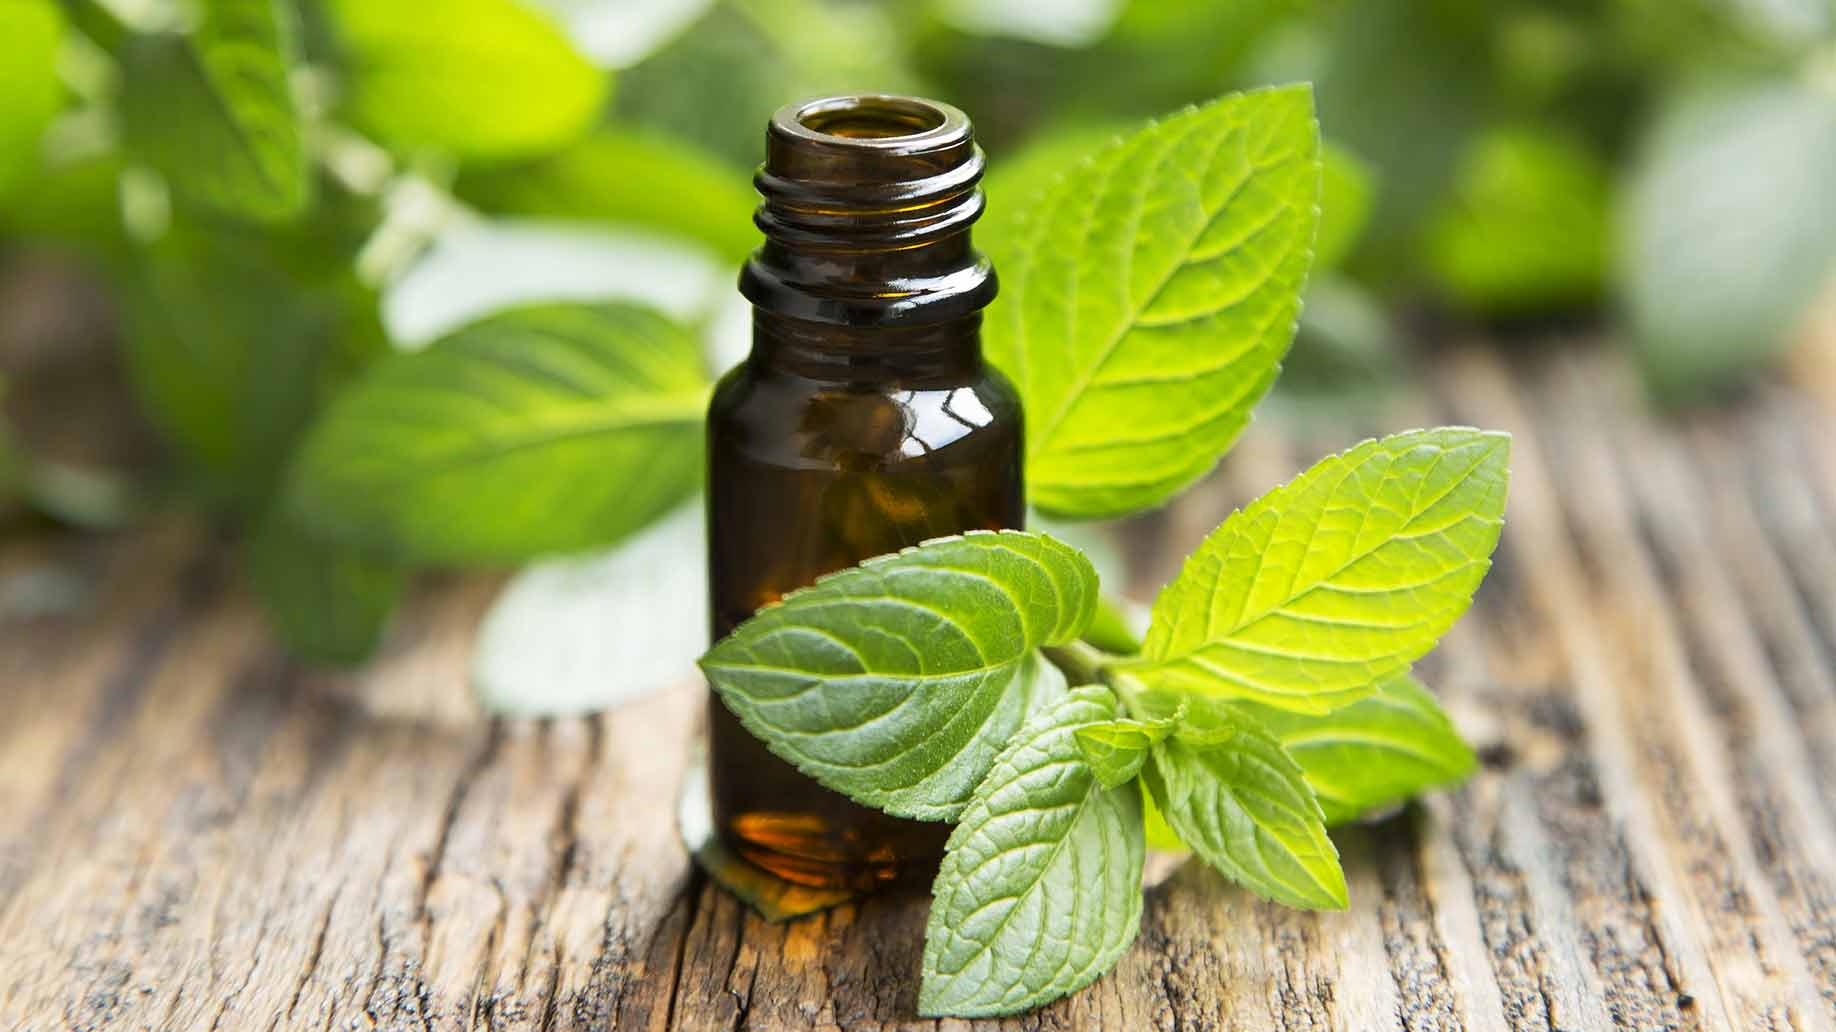 peppermint essential oil natural health benefits indigestion ibs hair growth